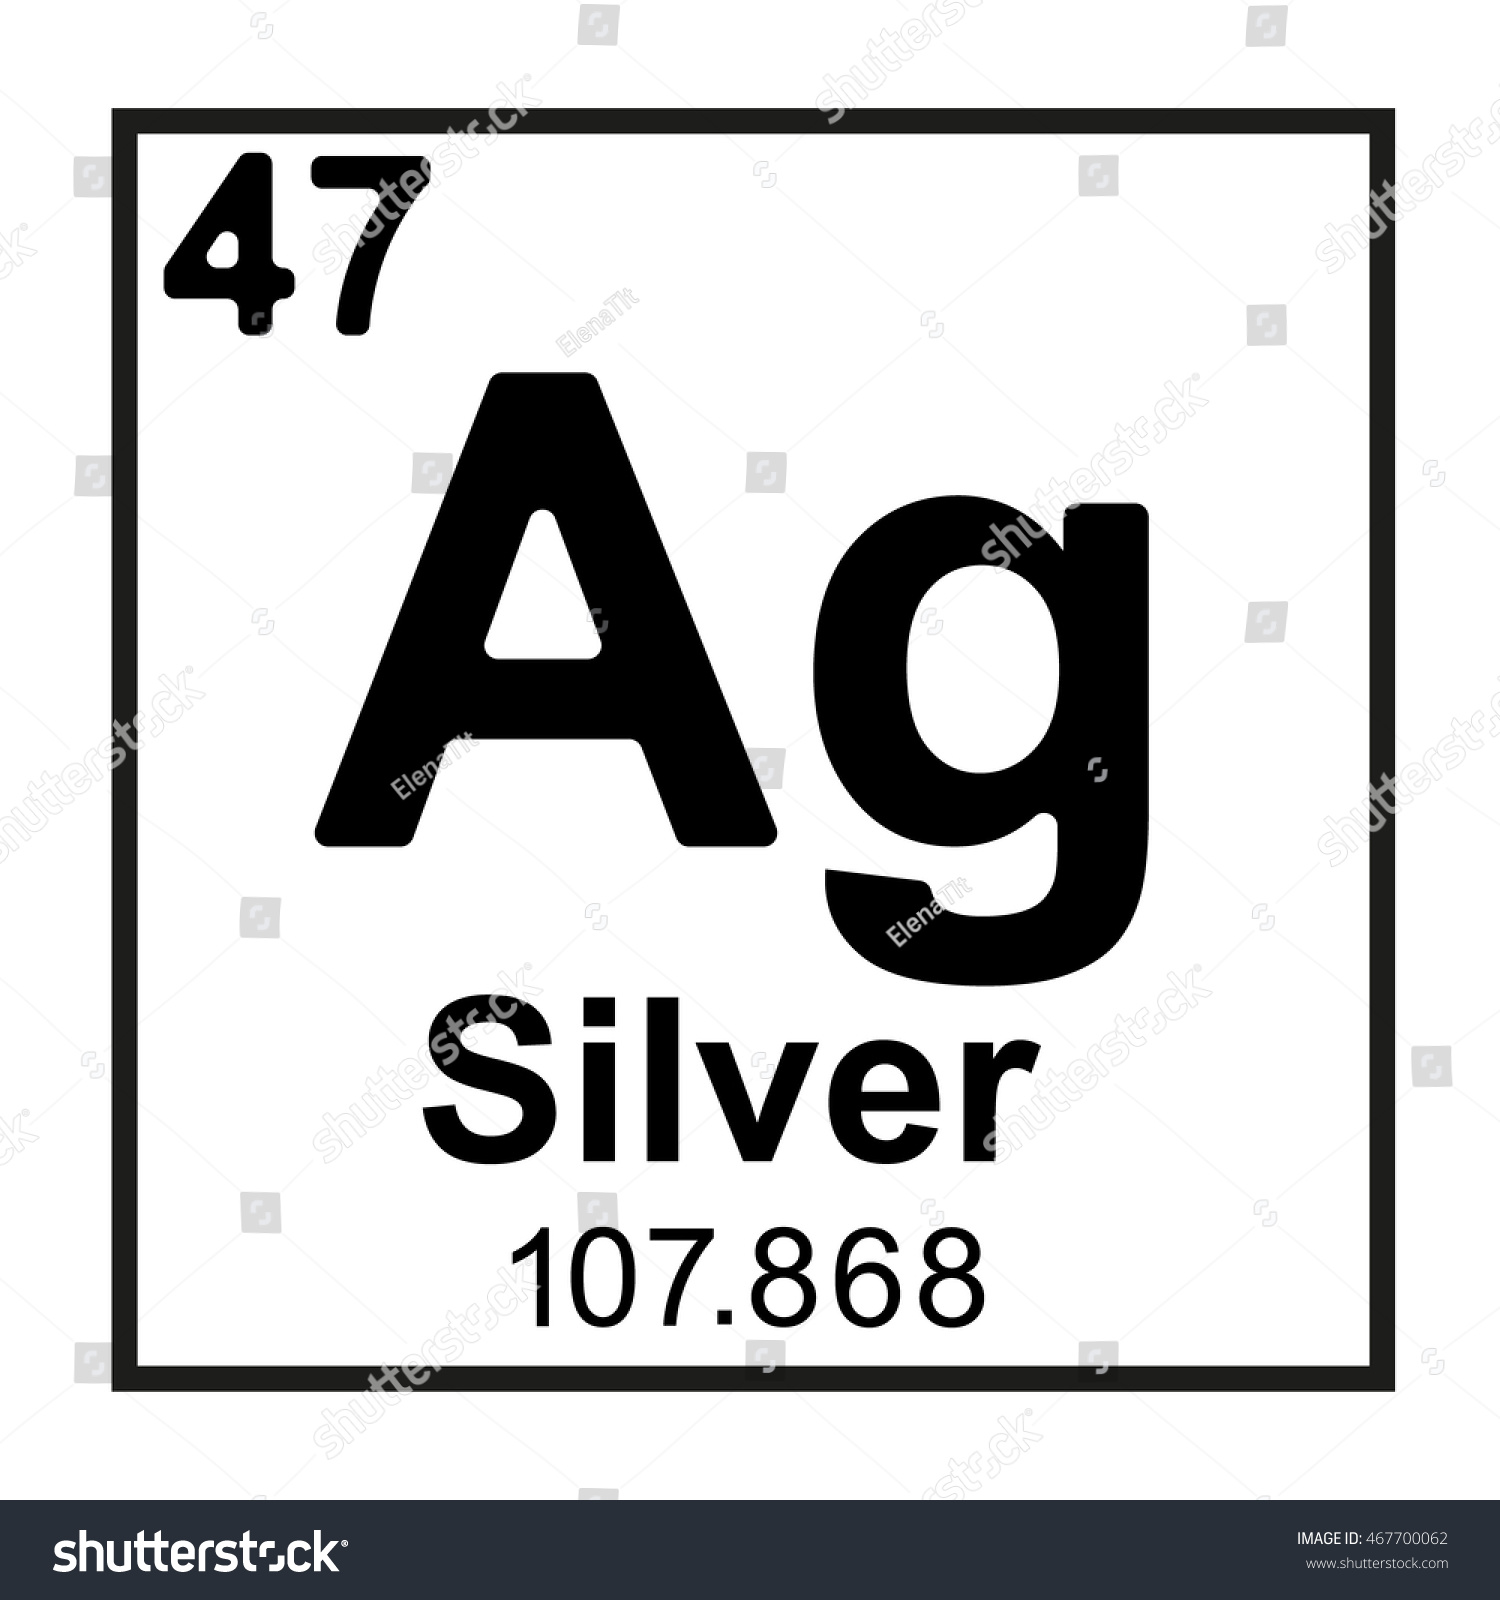 Periodic table element silver stock vector 467700062 shutterstock periodic table element silver gamestrikefo Image collections